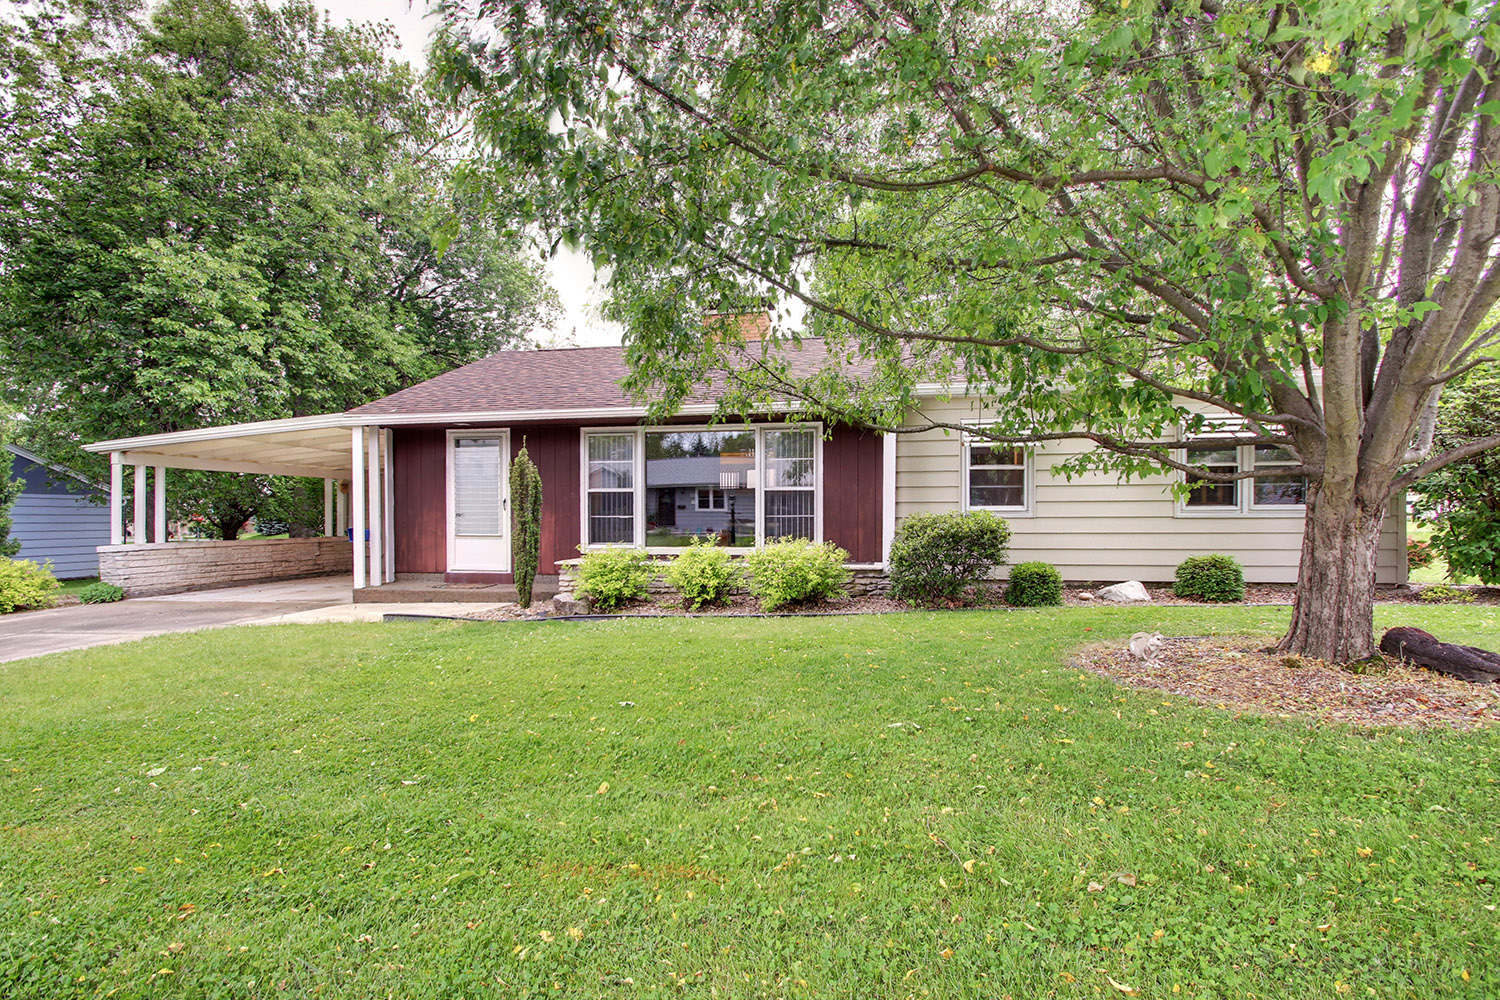 2307 Ranchland, Quincy, IL  62301